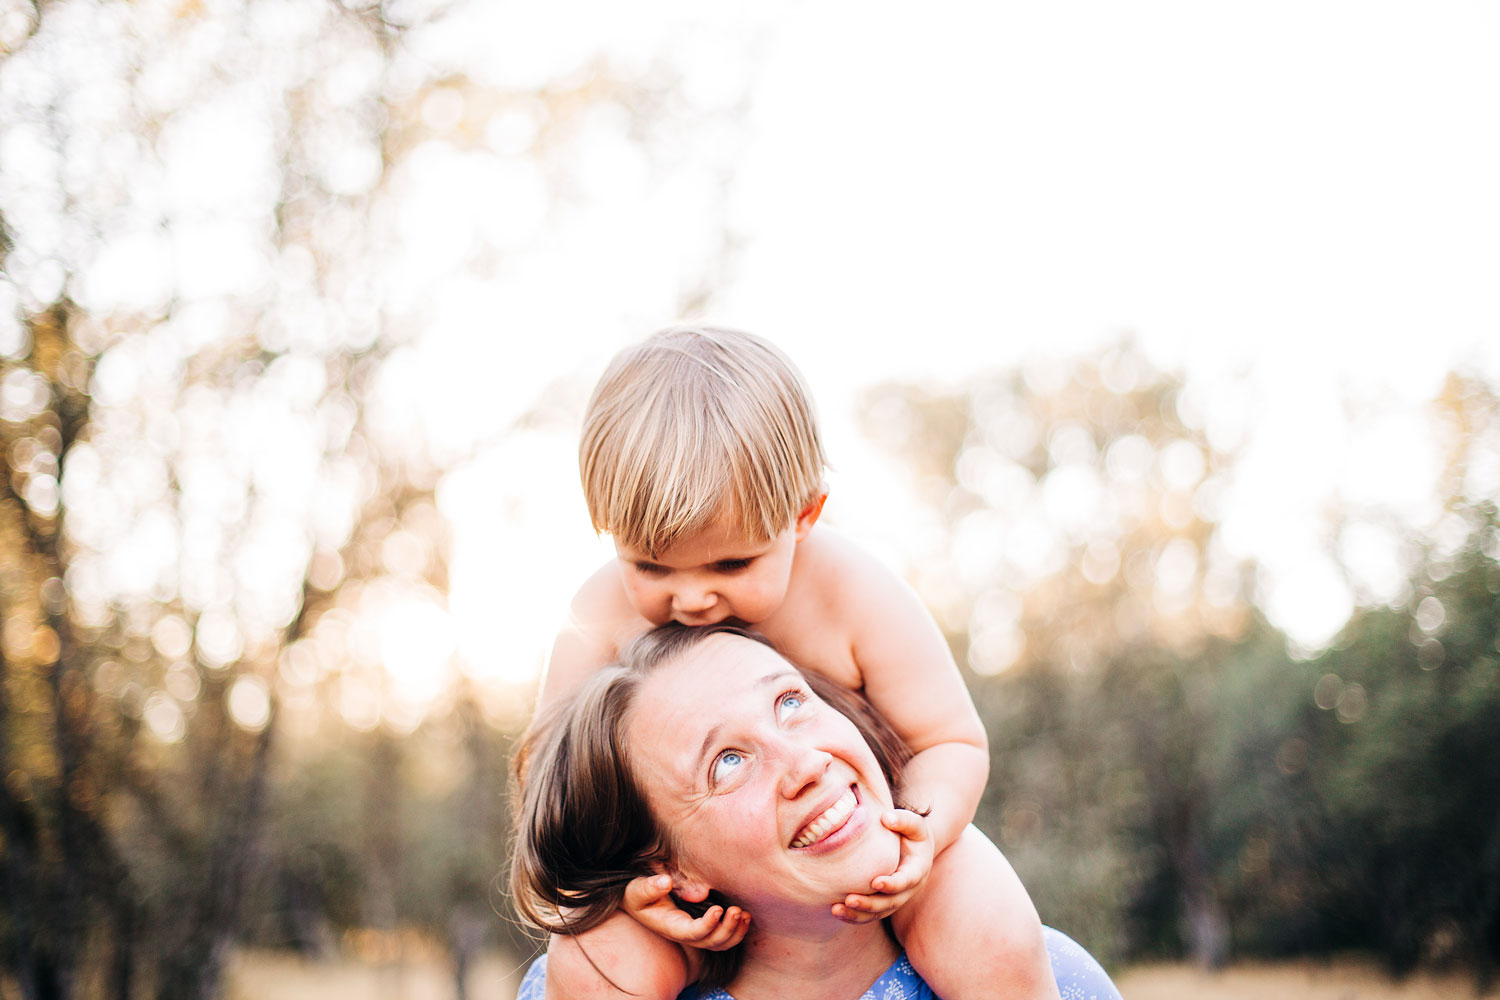 A mother is smiling at her son who has his arms around her and is kissing her. Sacramento, California. Amy Wright Photography.